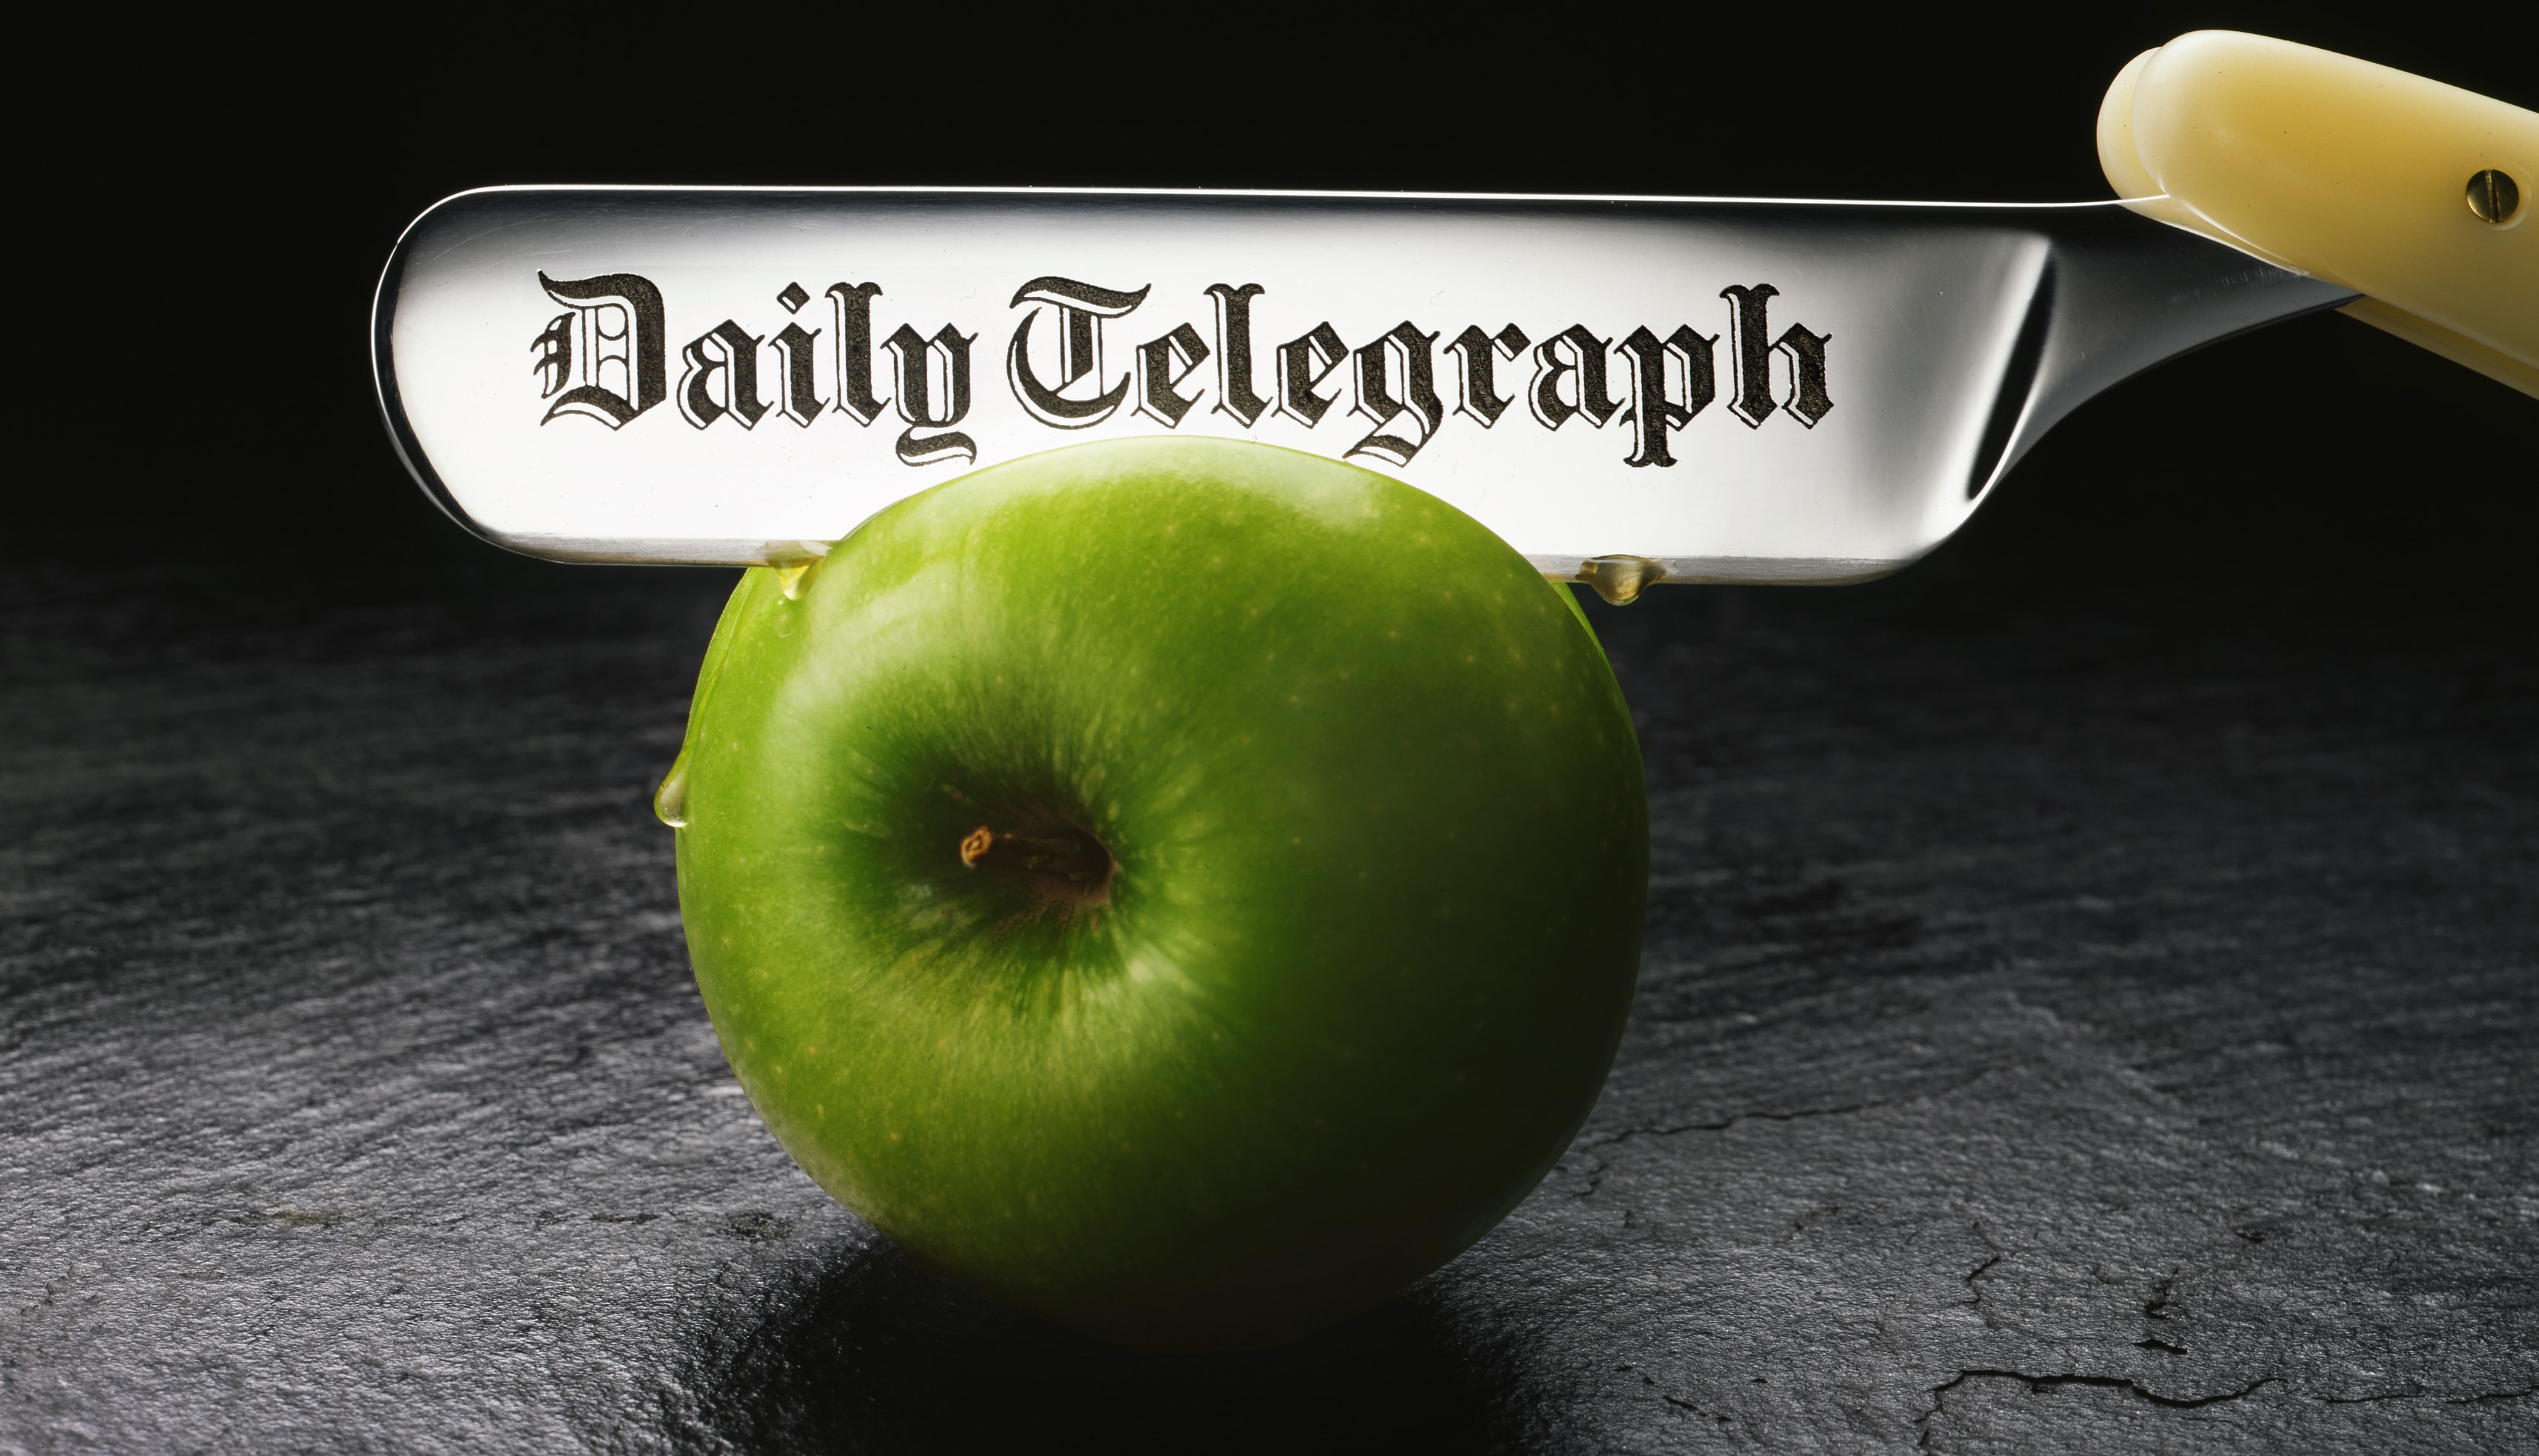 Daily Telegraph by Paul Bussell